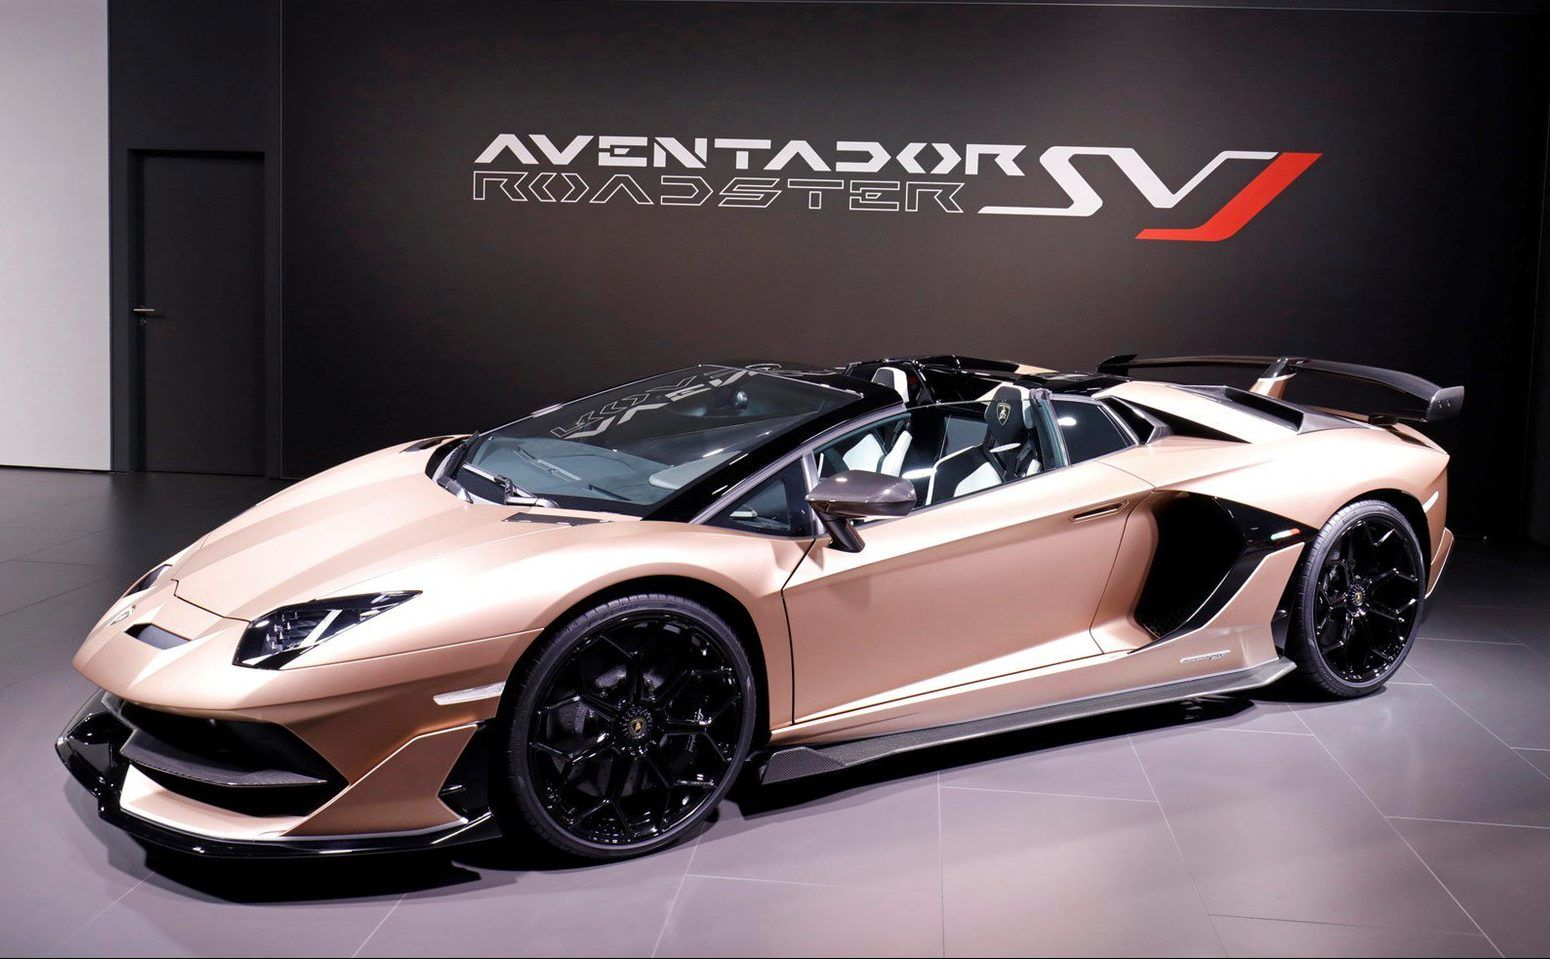 Lamborghini Aventador Svj Roadster Pricing For South Africa Lamborghini Aventador Lamborghini Roadsters